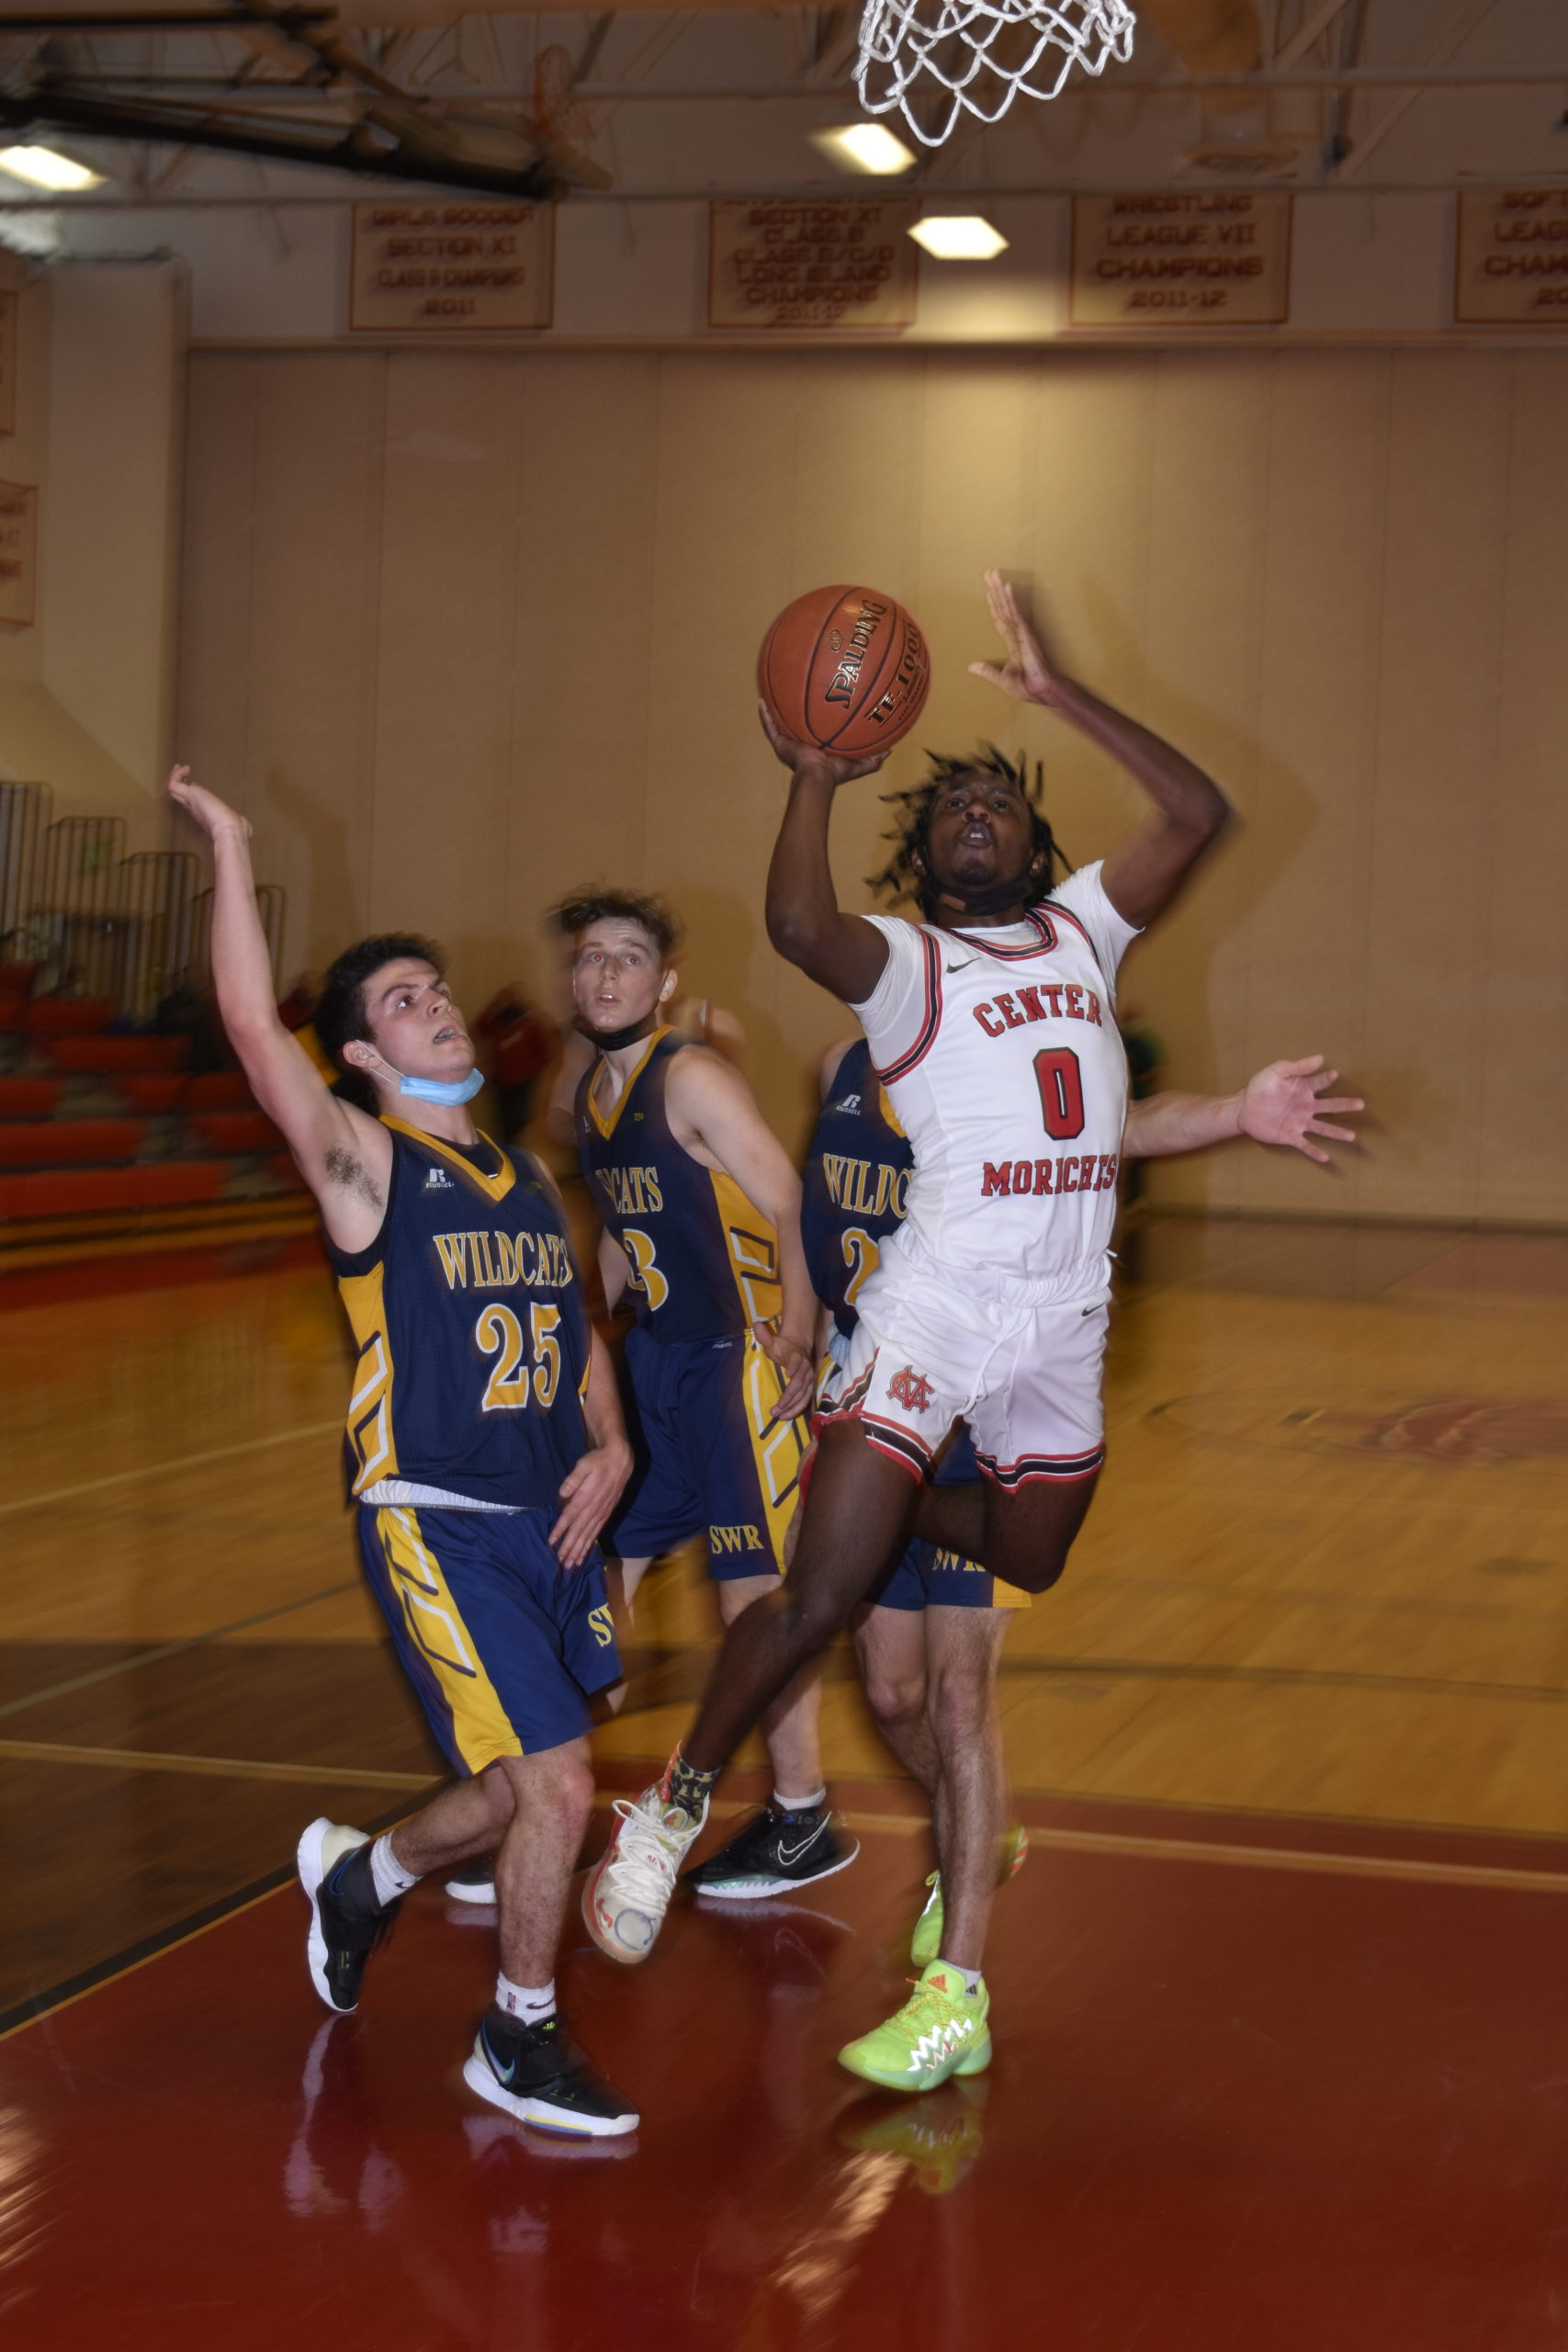 Center Moriches senior Dayrien Franklin scored a team-high 20 points in Sunday's victory.